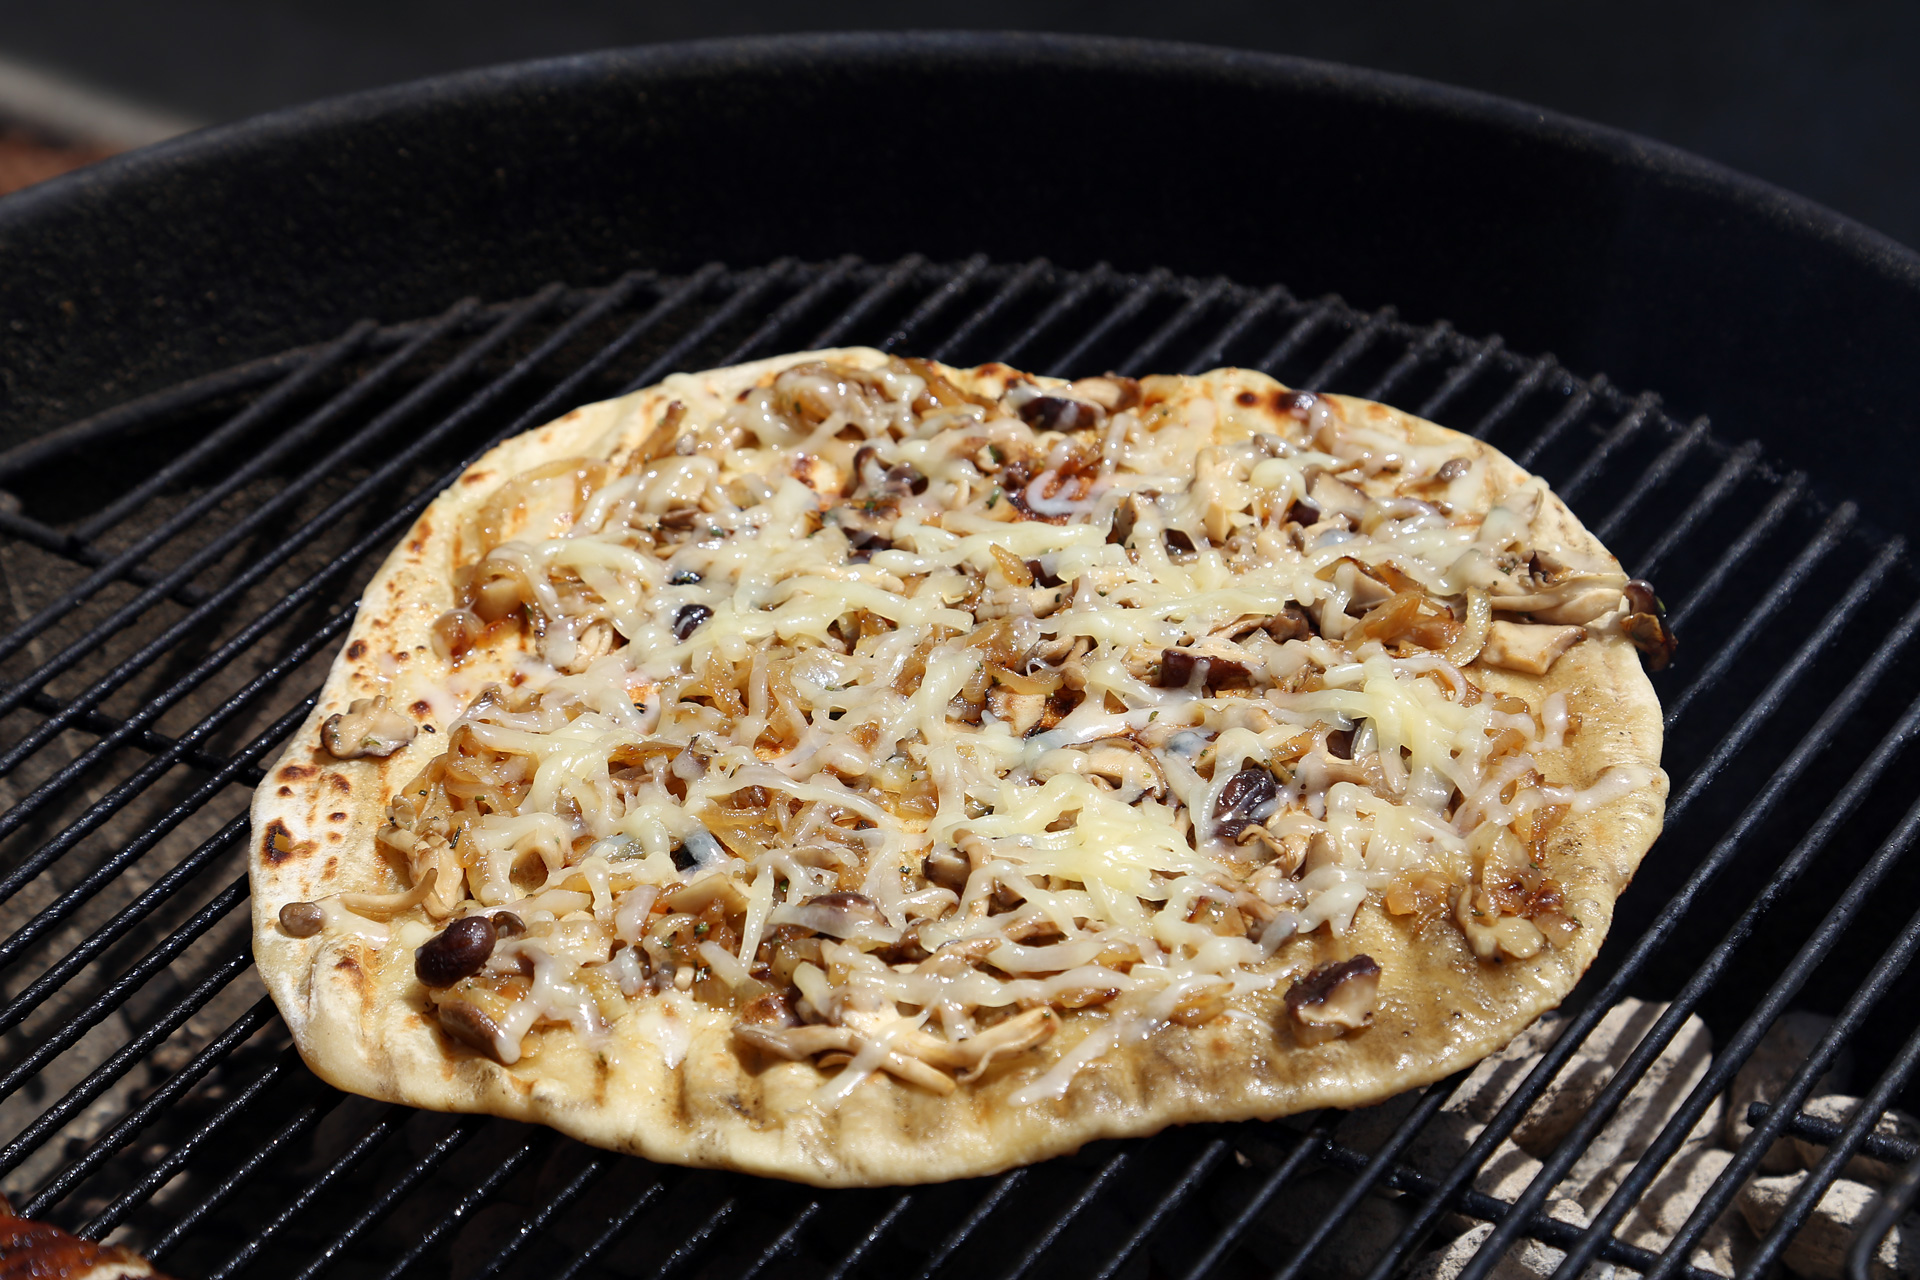 Cover the grill and let cook until the cheese is melted and bubbly and the dough is cooked through, rotating the pizza every so often to avoid hot spots and burnt pizza.